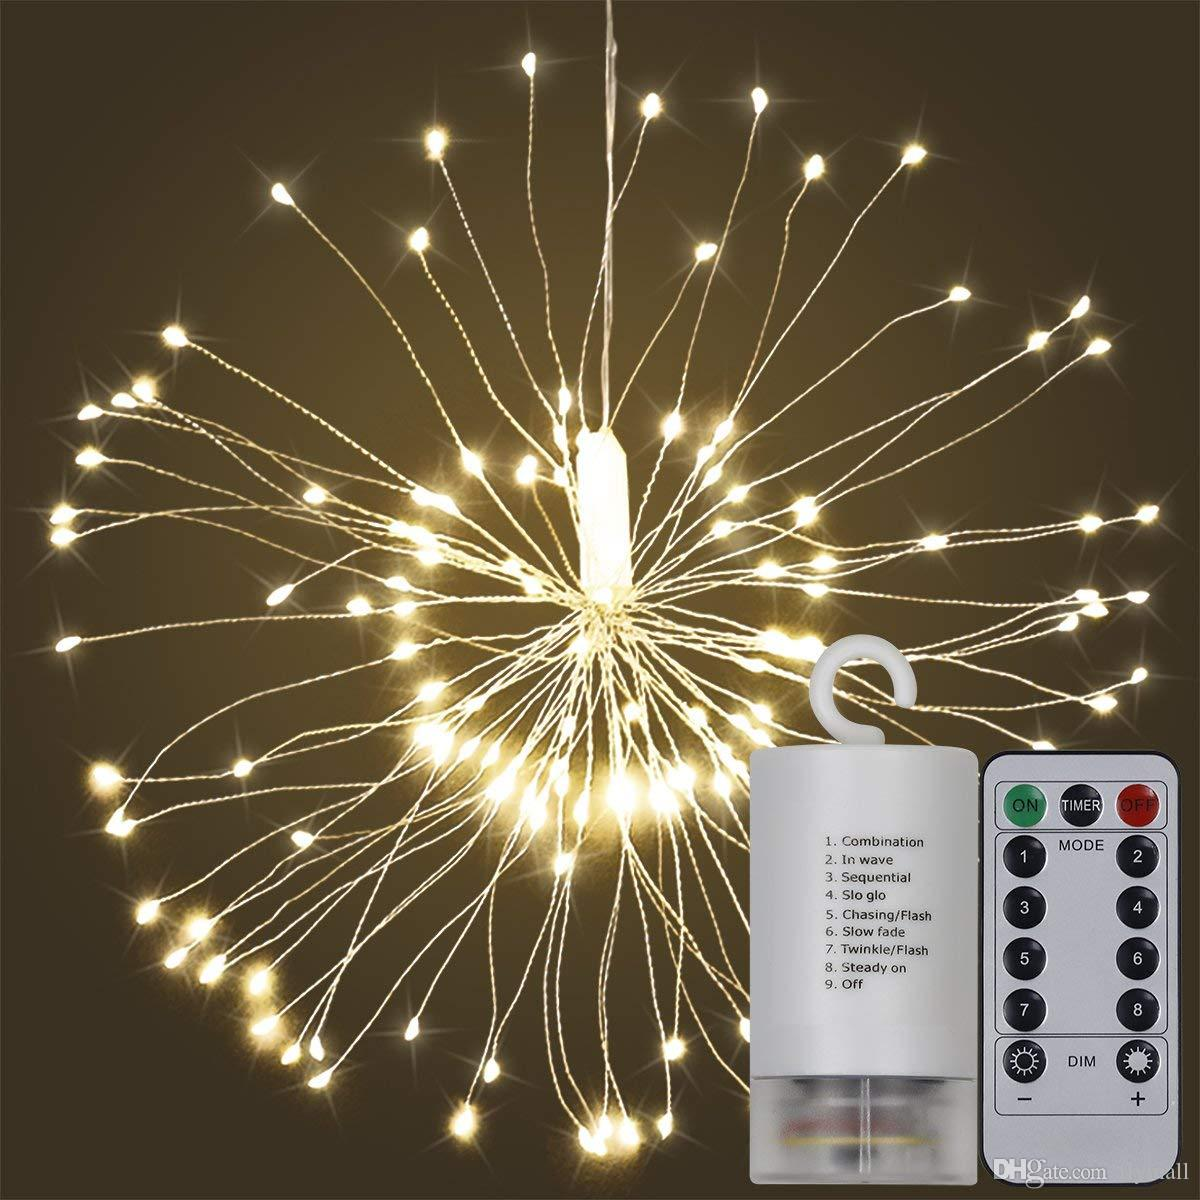 50pcs 150LED Battery Powered 8 Modes Copper Wire String Light Firework LED Starburst Lights with Remote Control for Home/Garden Decoration